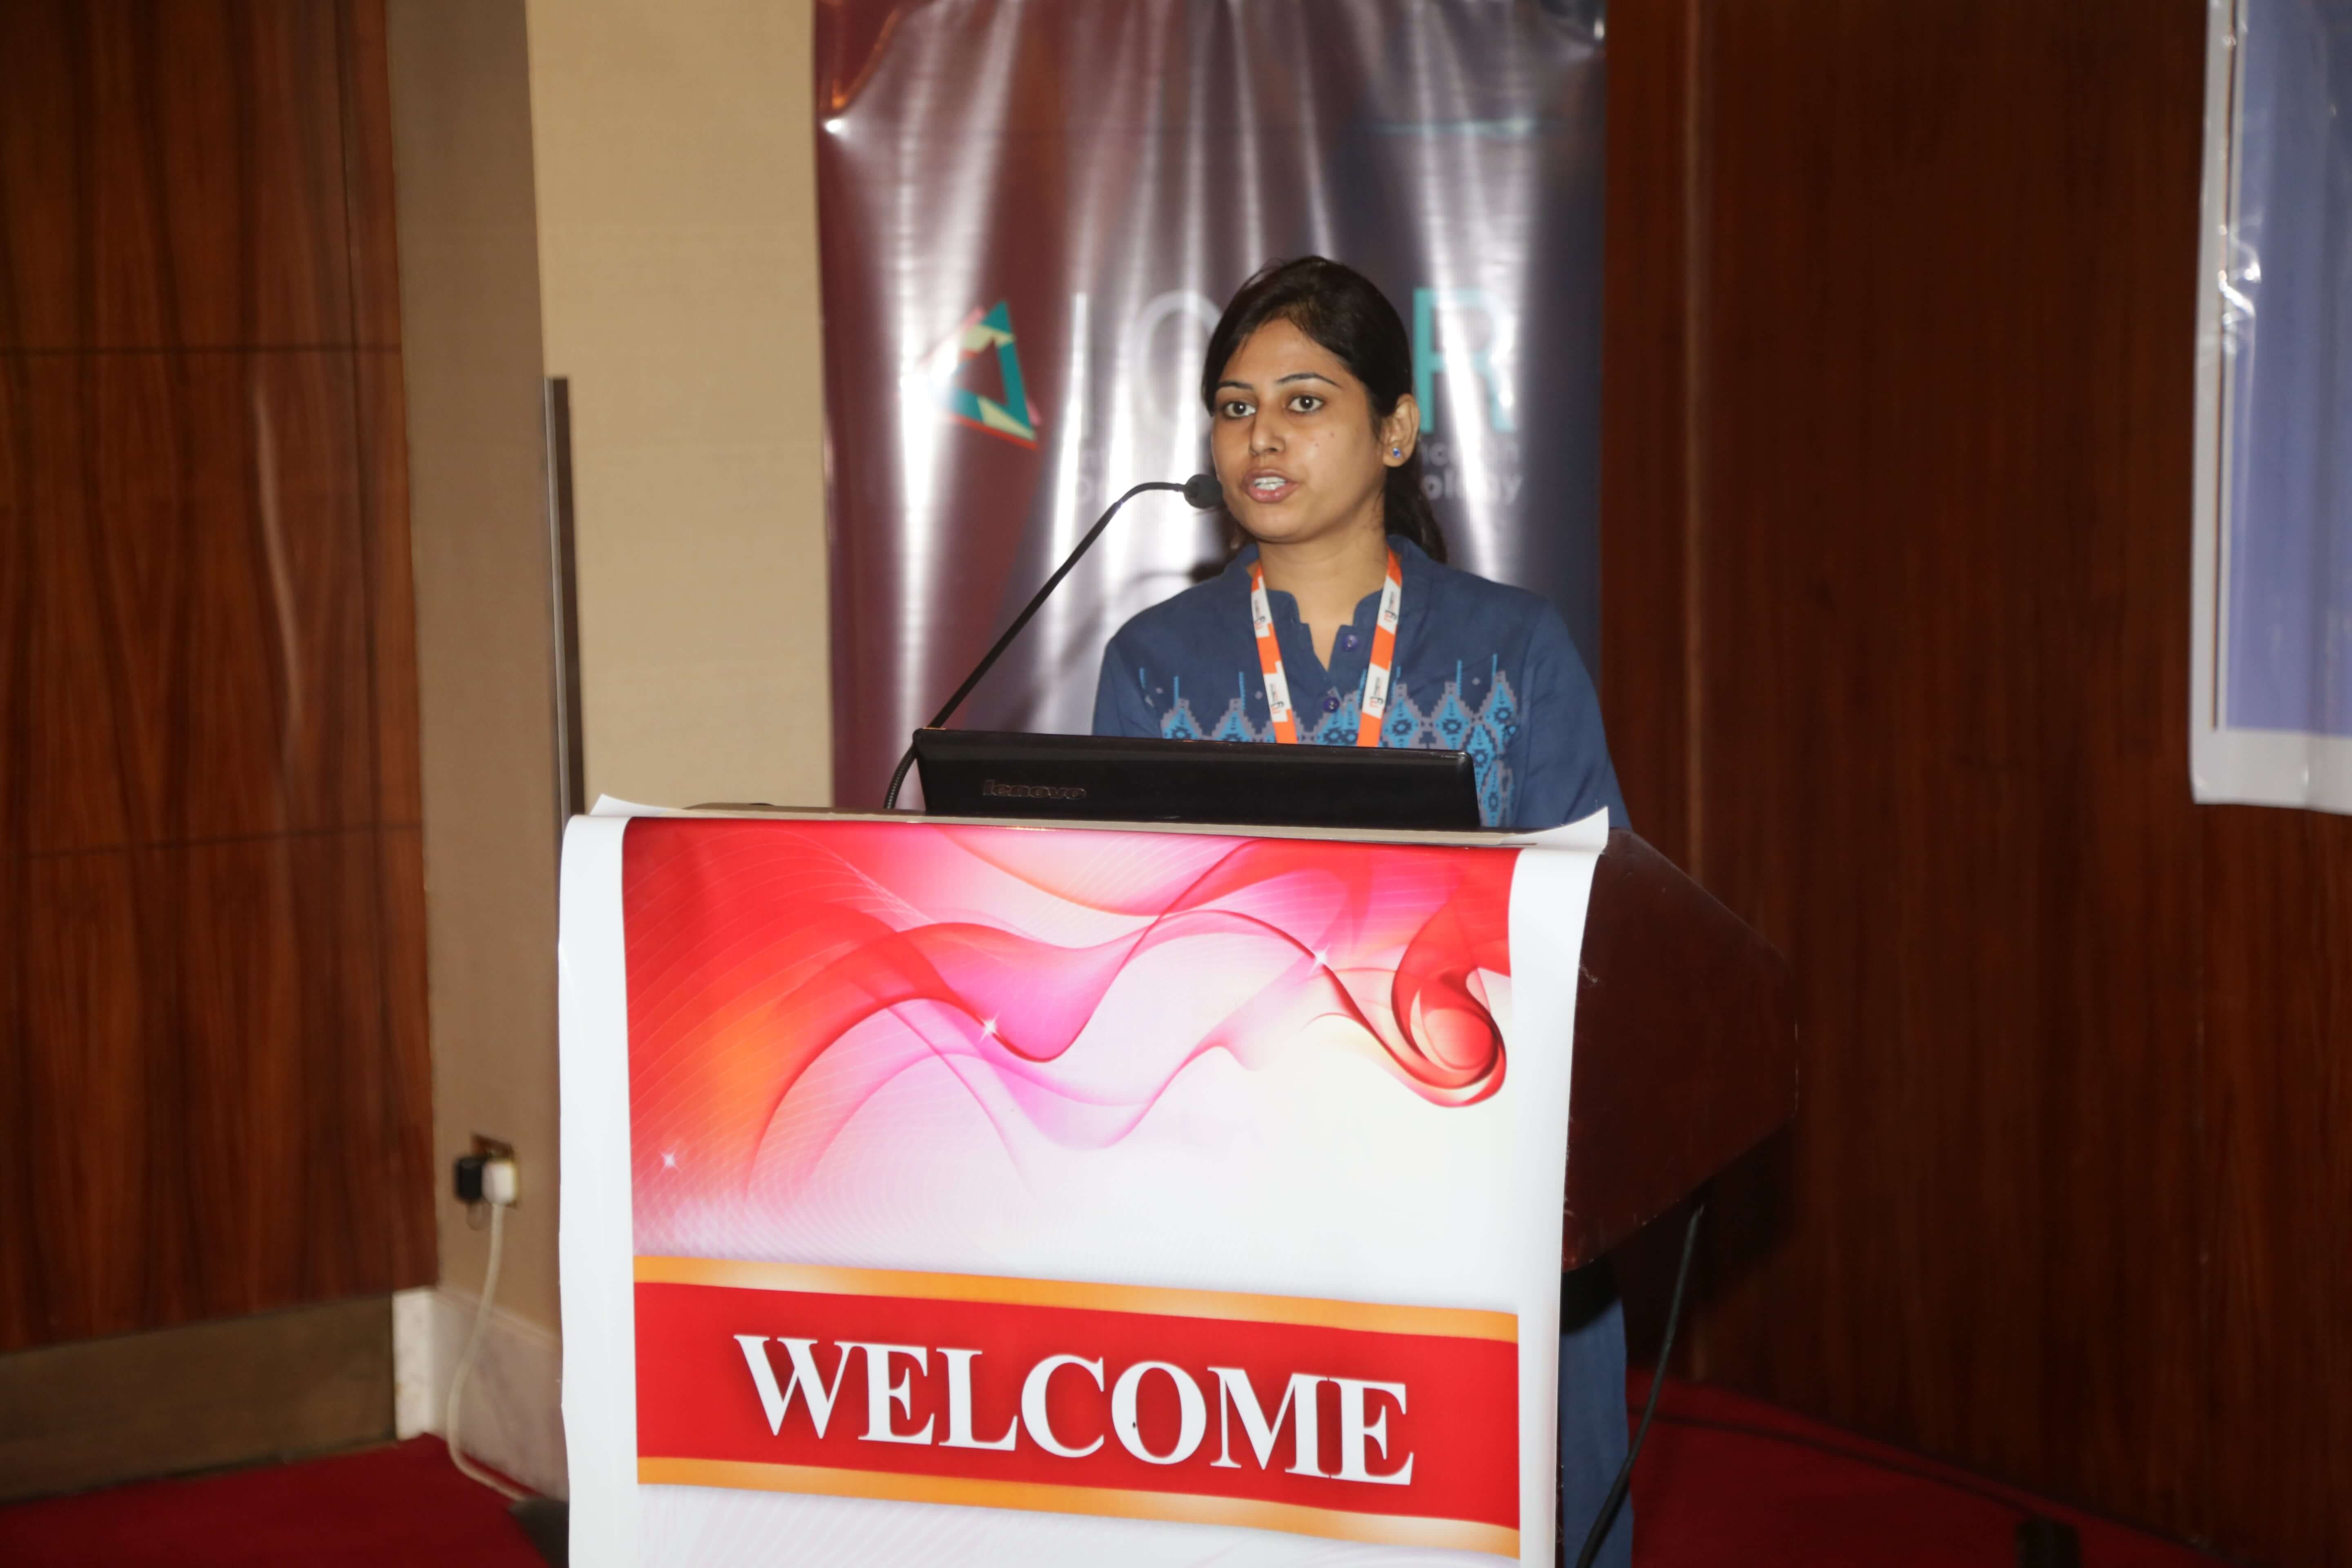 Cancer education conferences - Mrs. Shaista Suhail